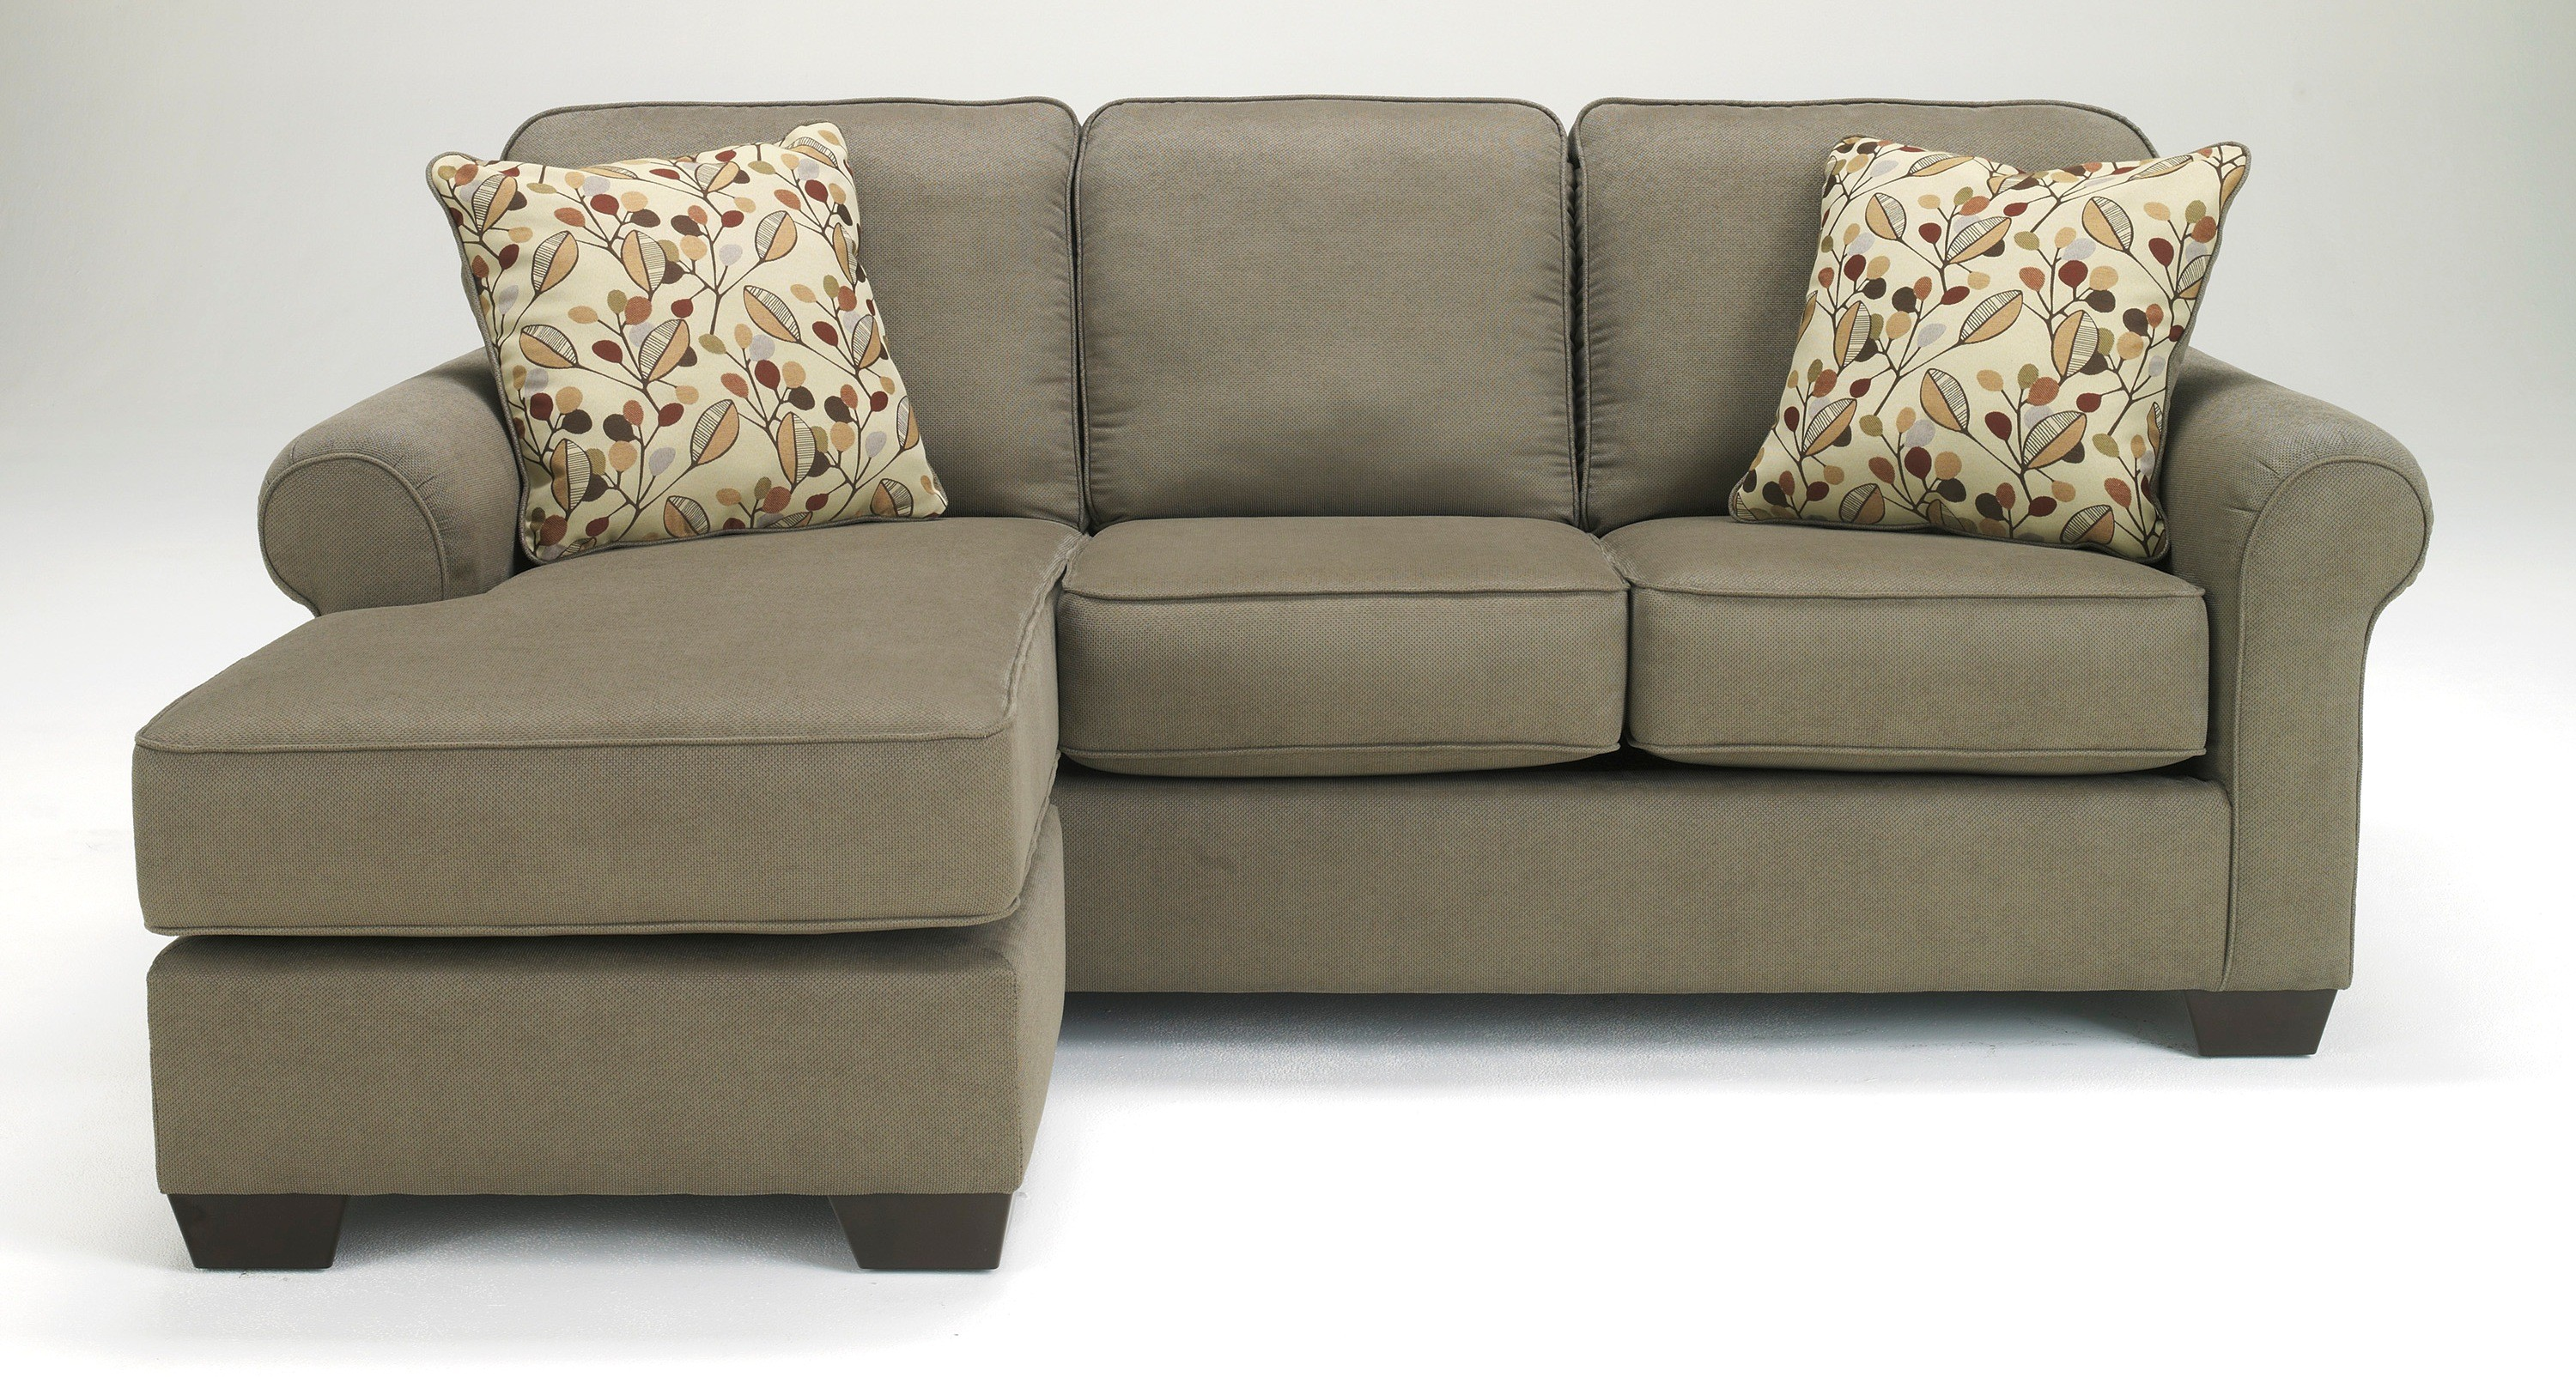 Best Ashley Furniture Sleeper Sofa 86 With Additional Contemporary